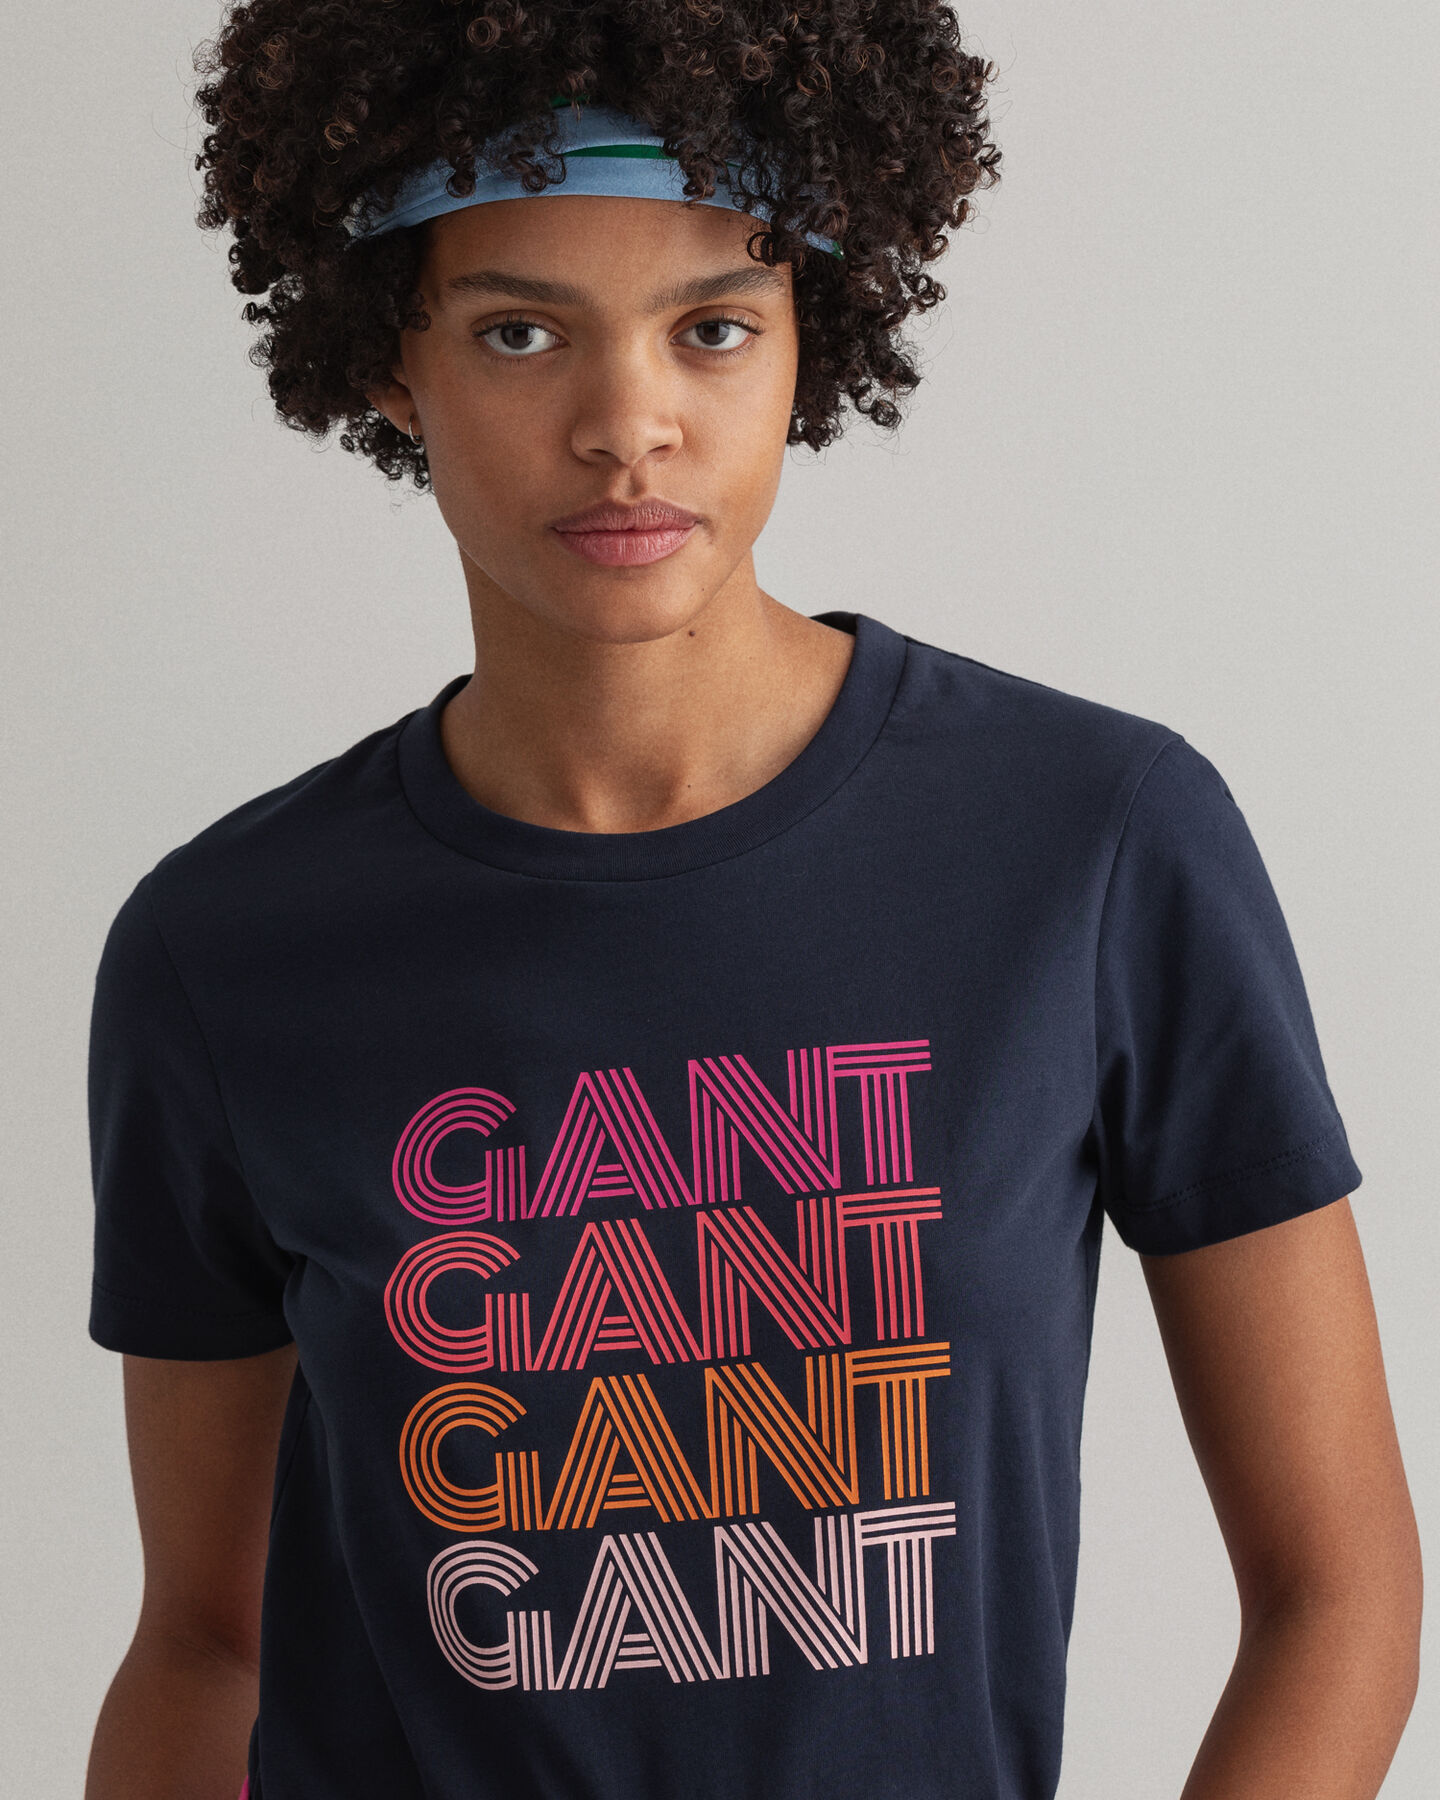 Gradient Graphic T-Shirt